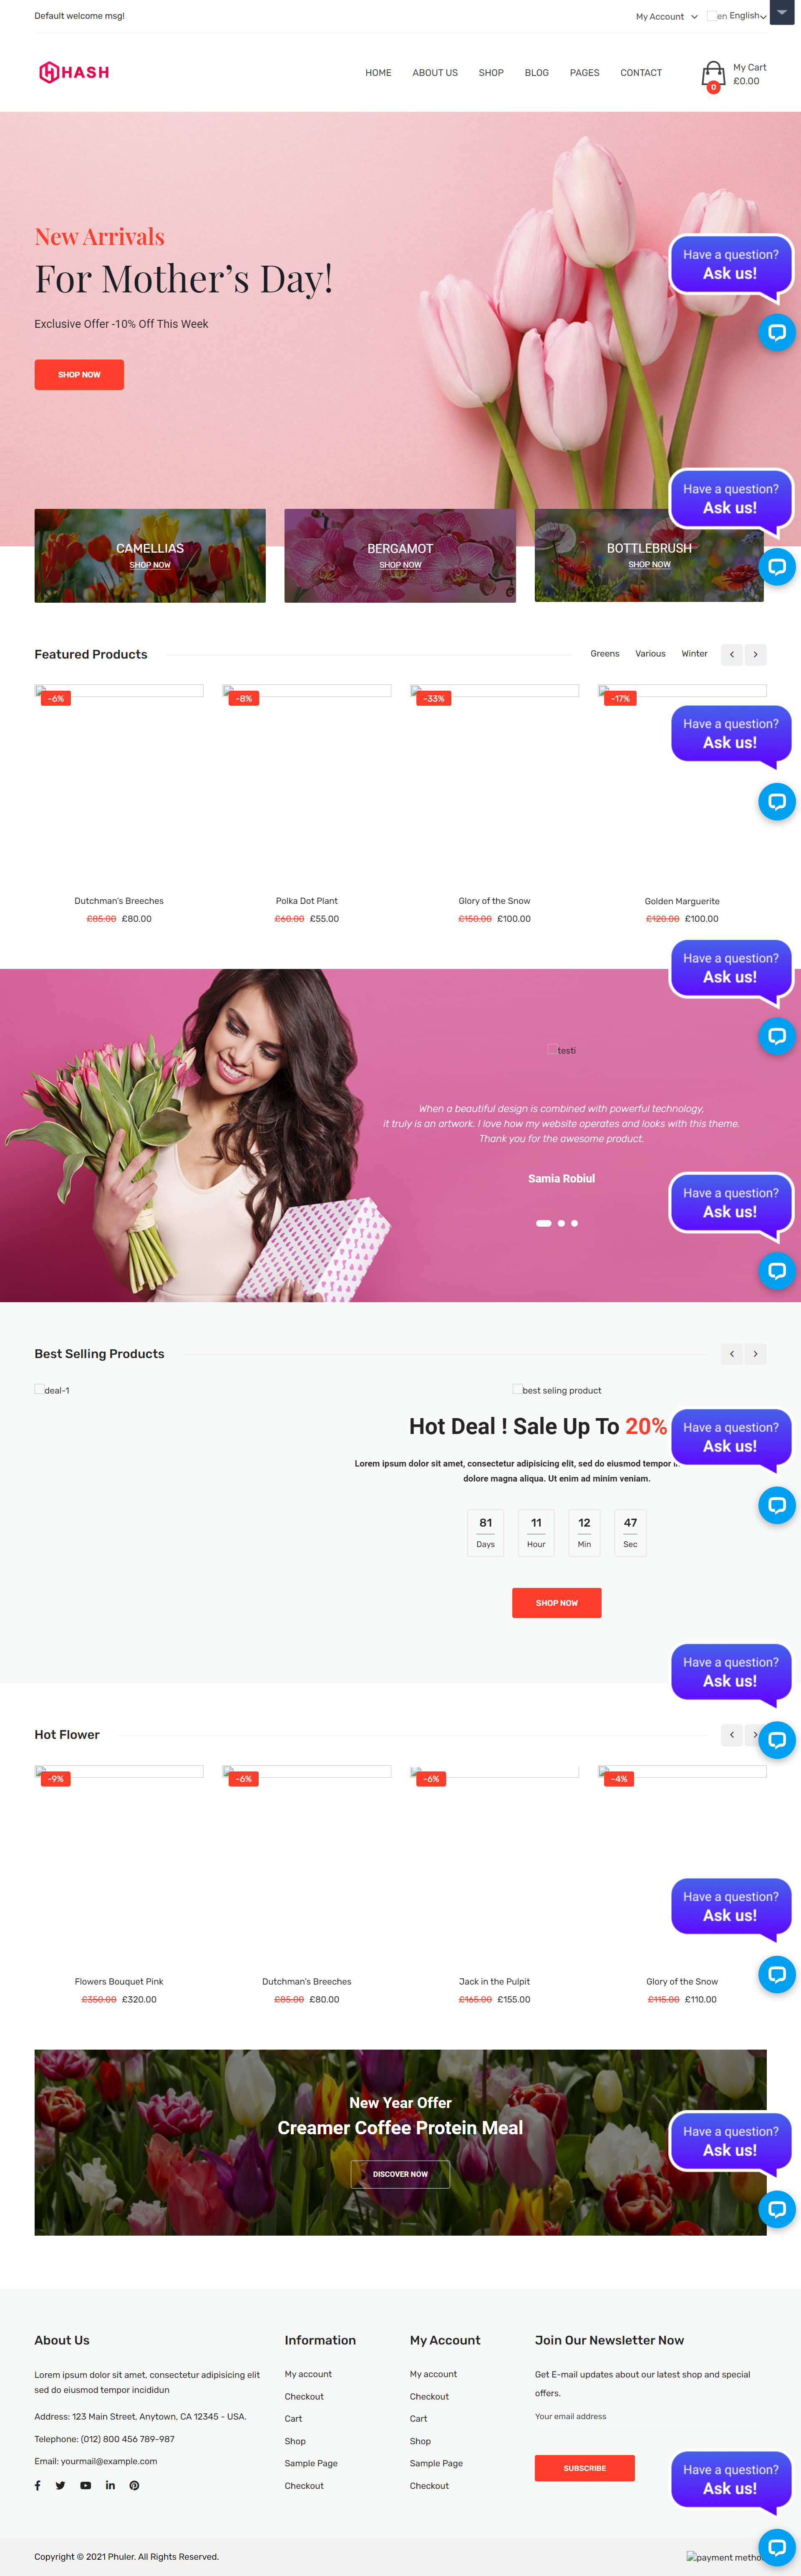 Florists and Flower Shops Website Development Company in Allahabad